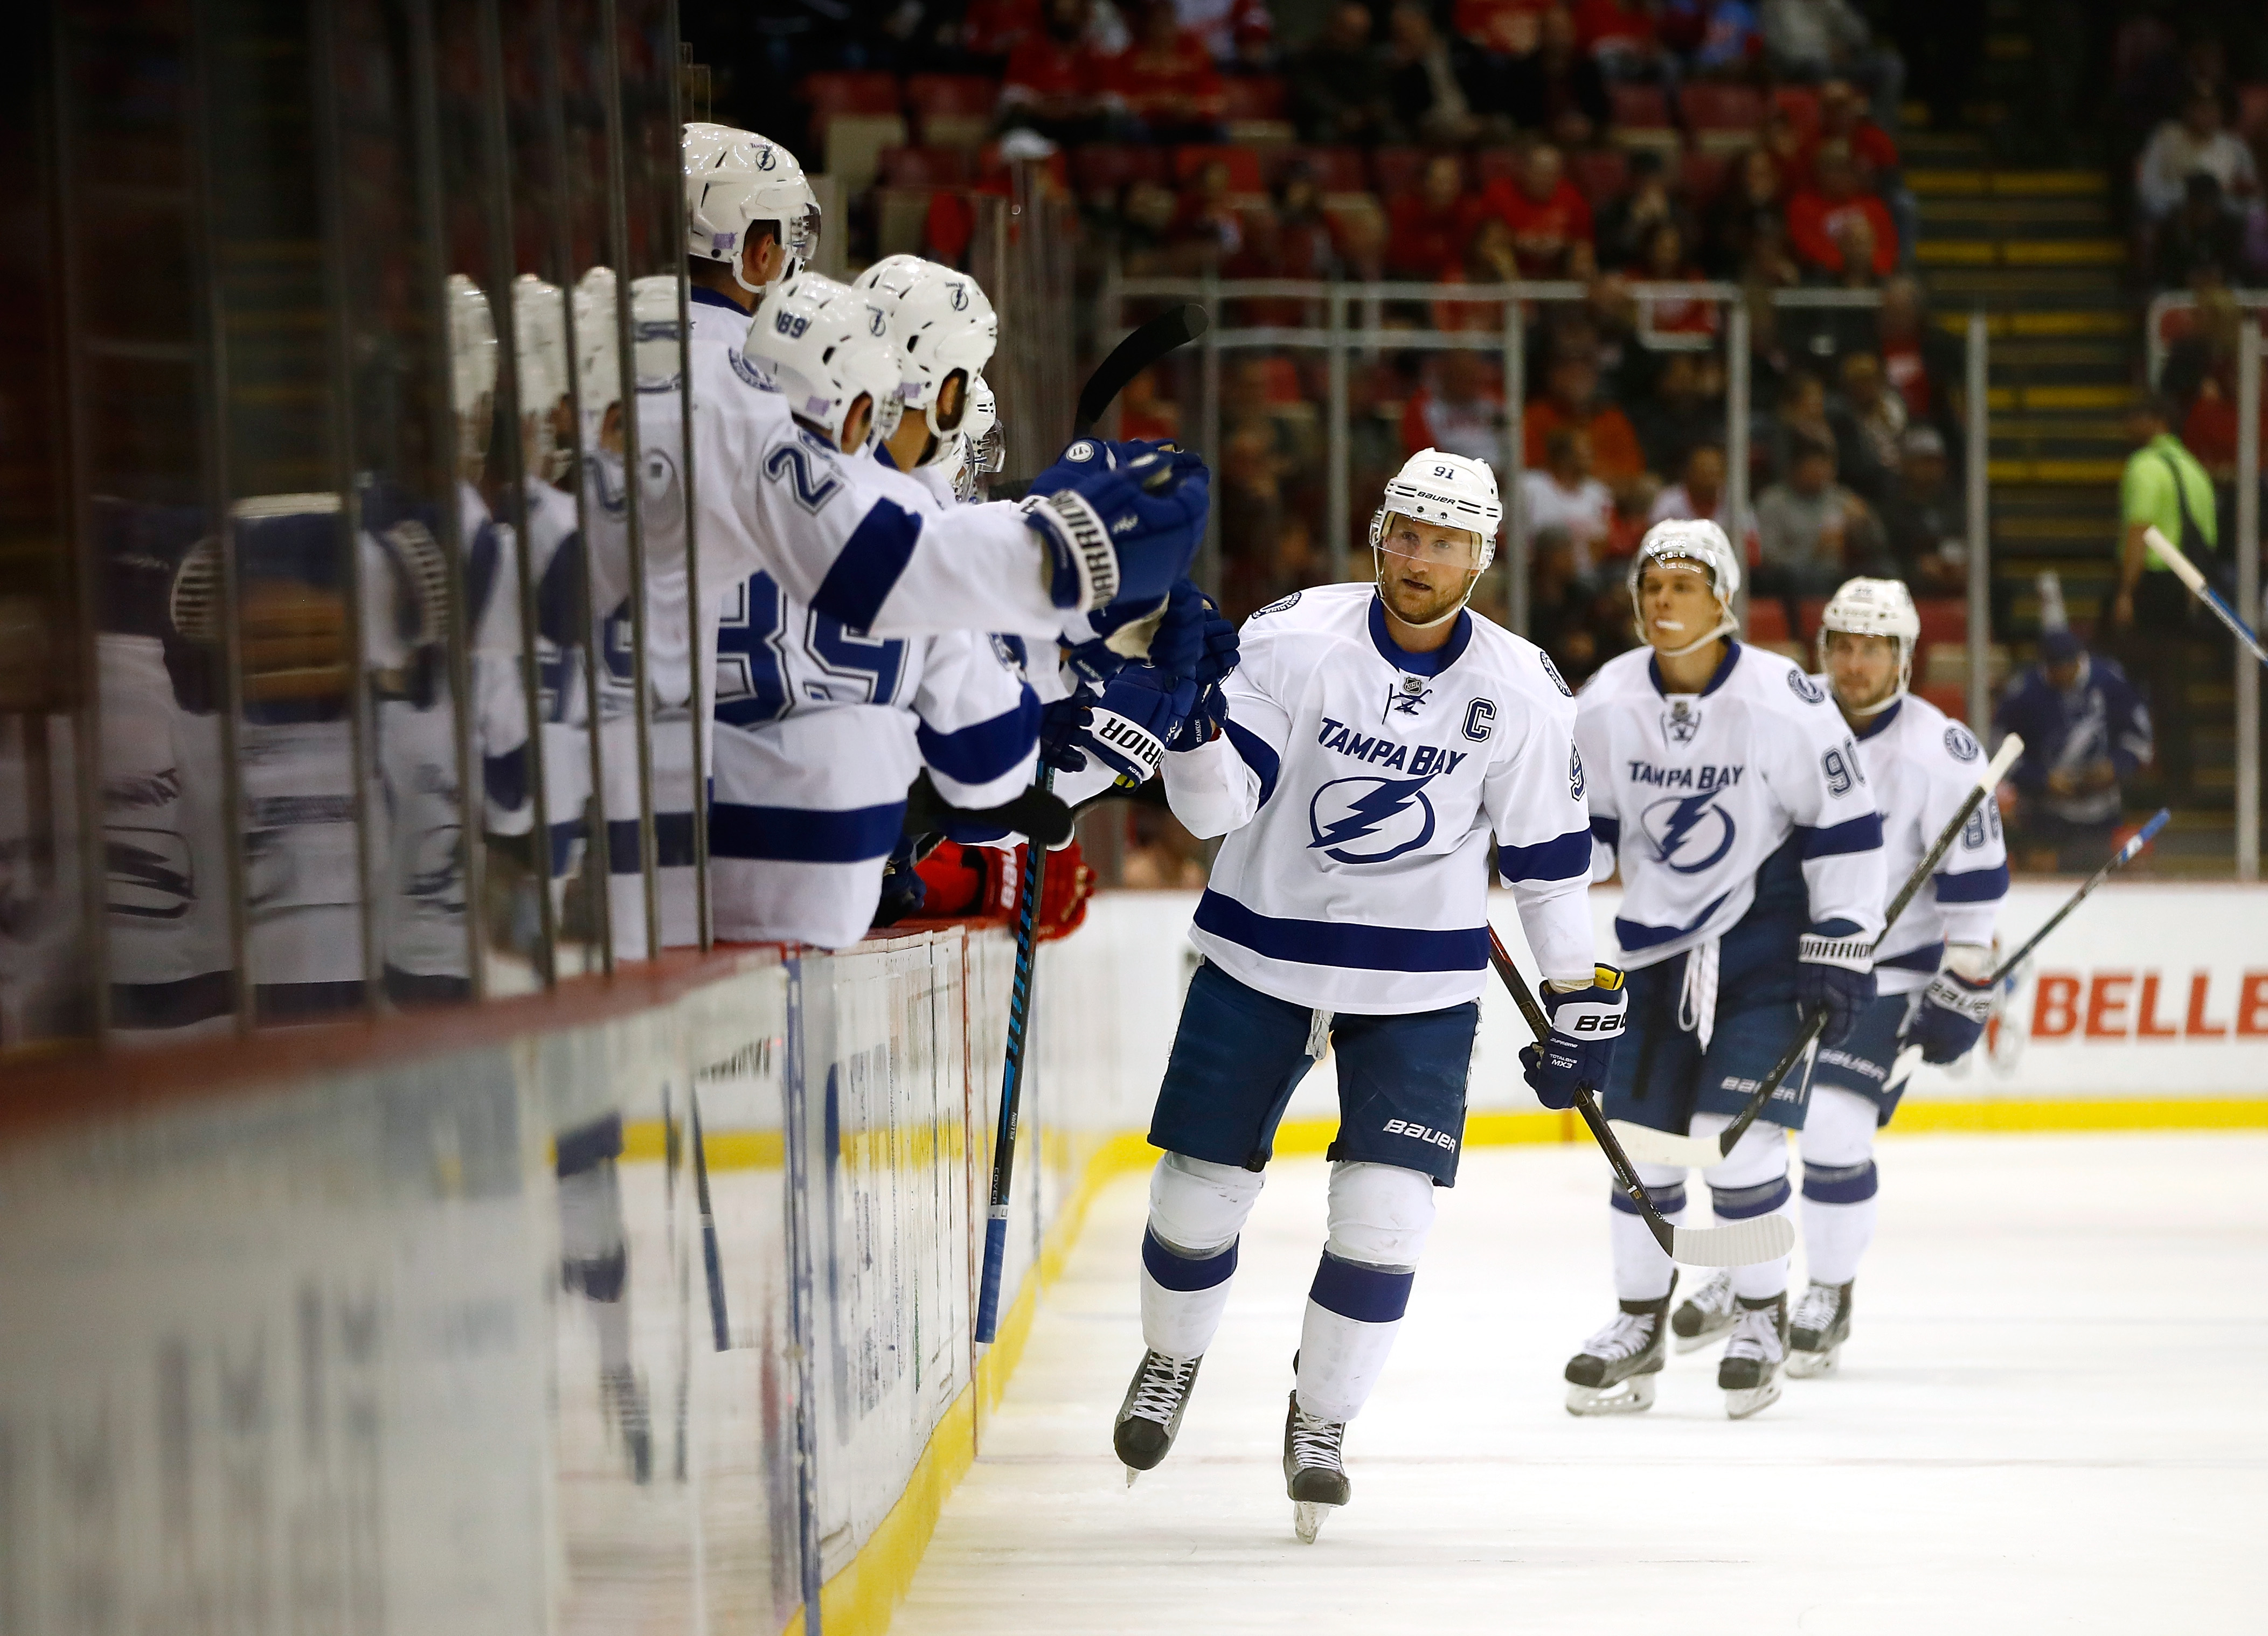 Steven Stamkos celebrated a goal Tuesday before leaving with a knee injury. (Getty Images)